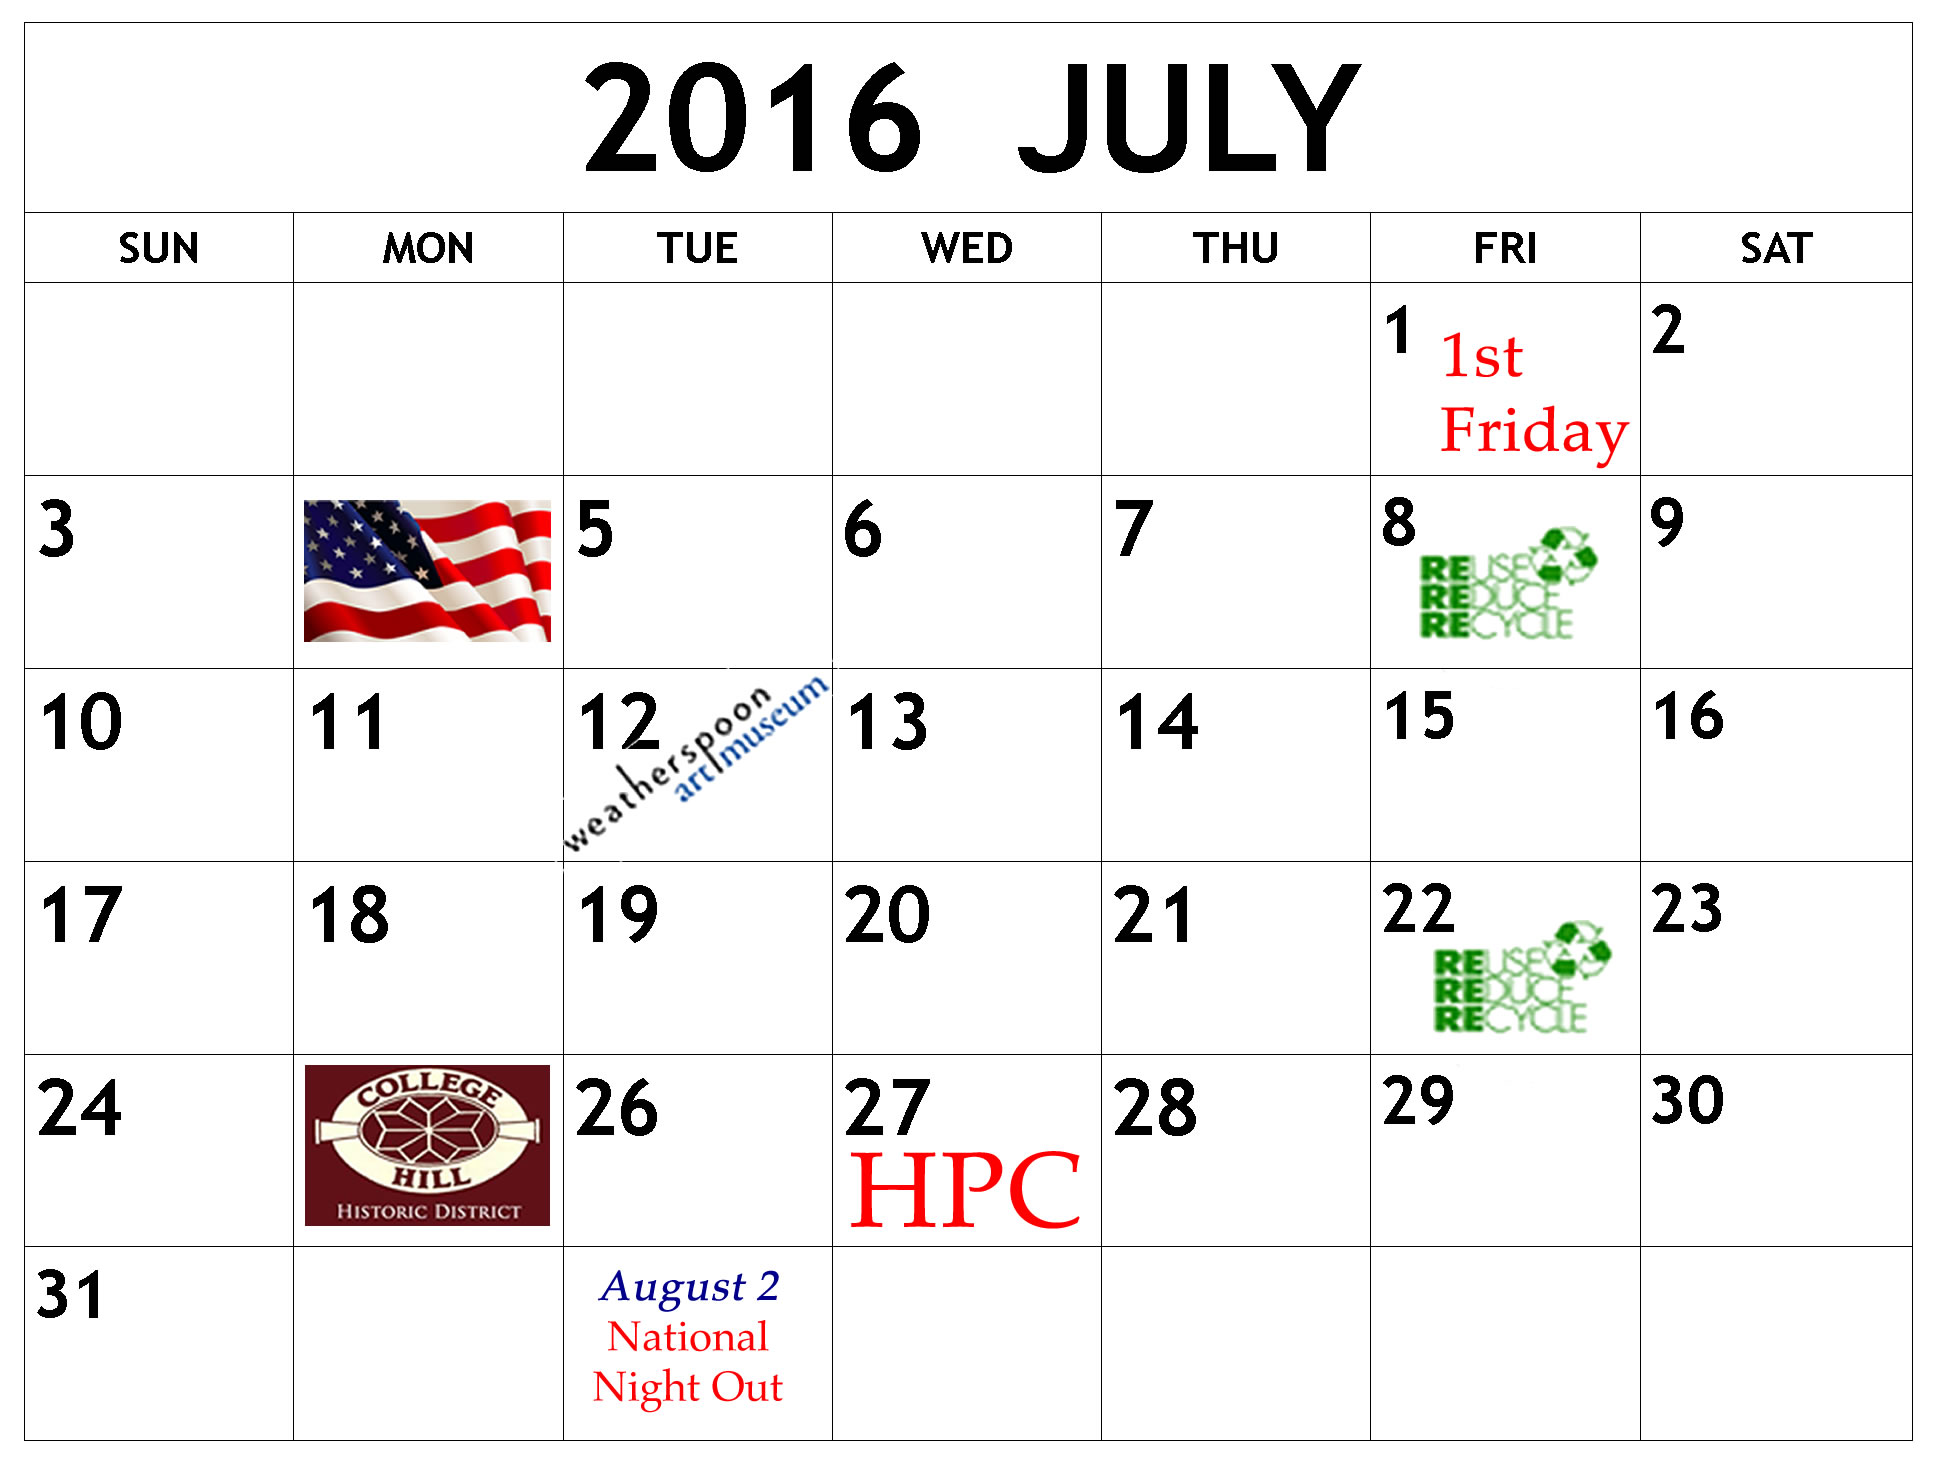 July calendar with College Hill events noted